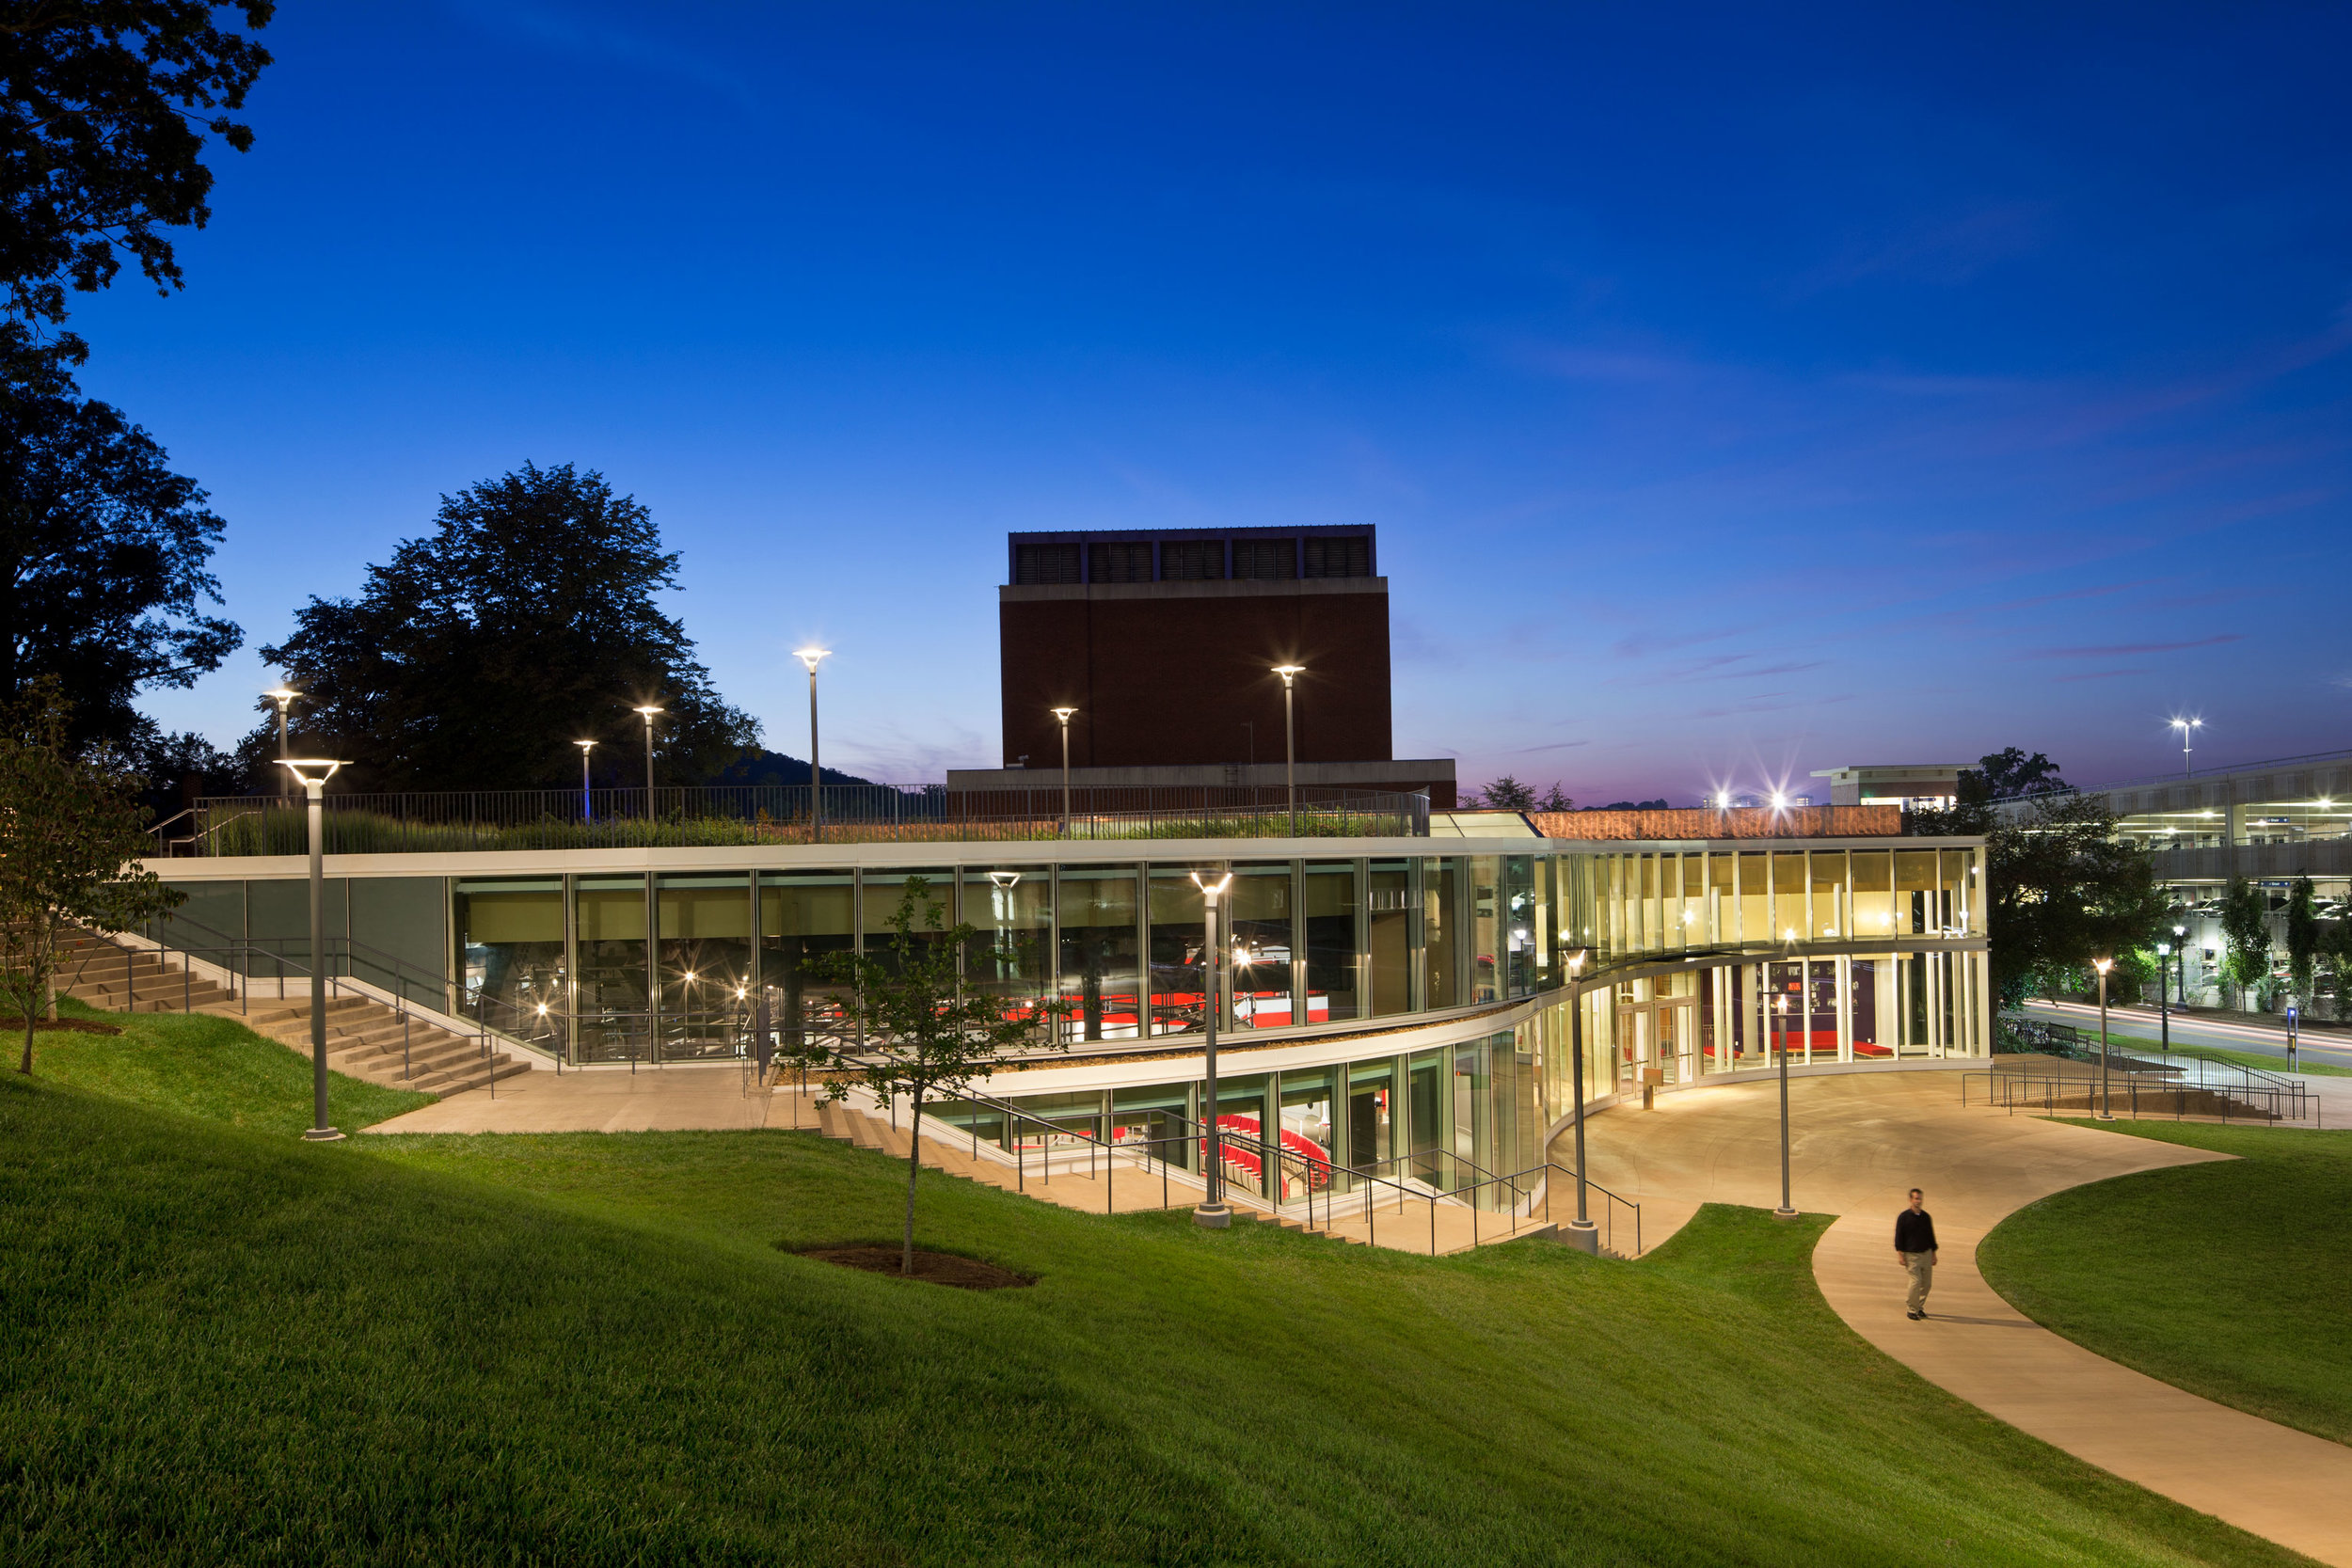 University of Virginia's Ruth Caplin Theater